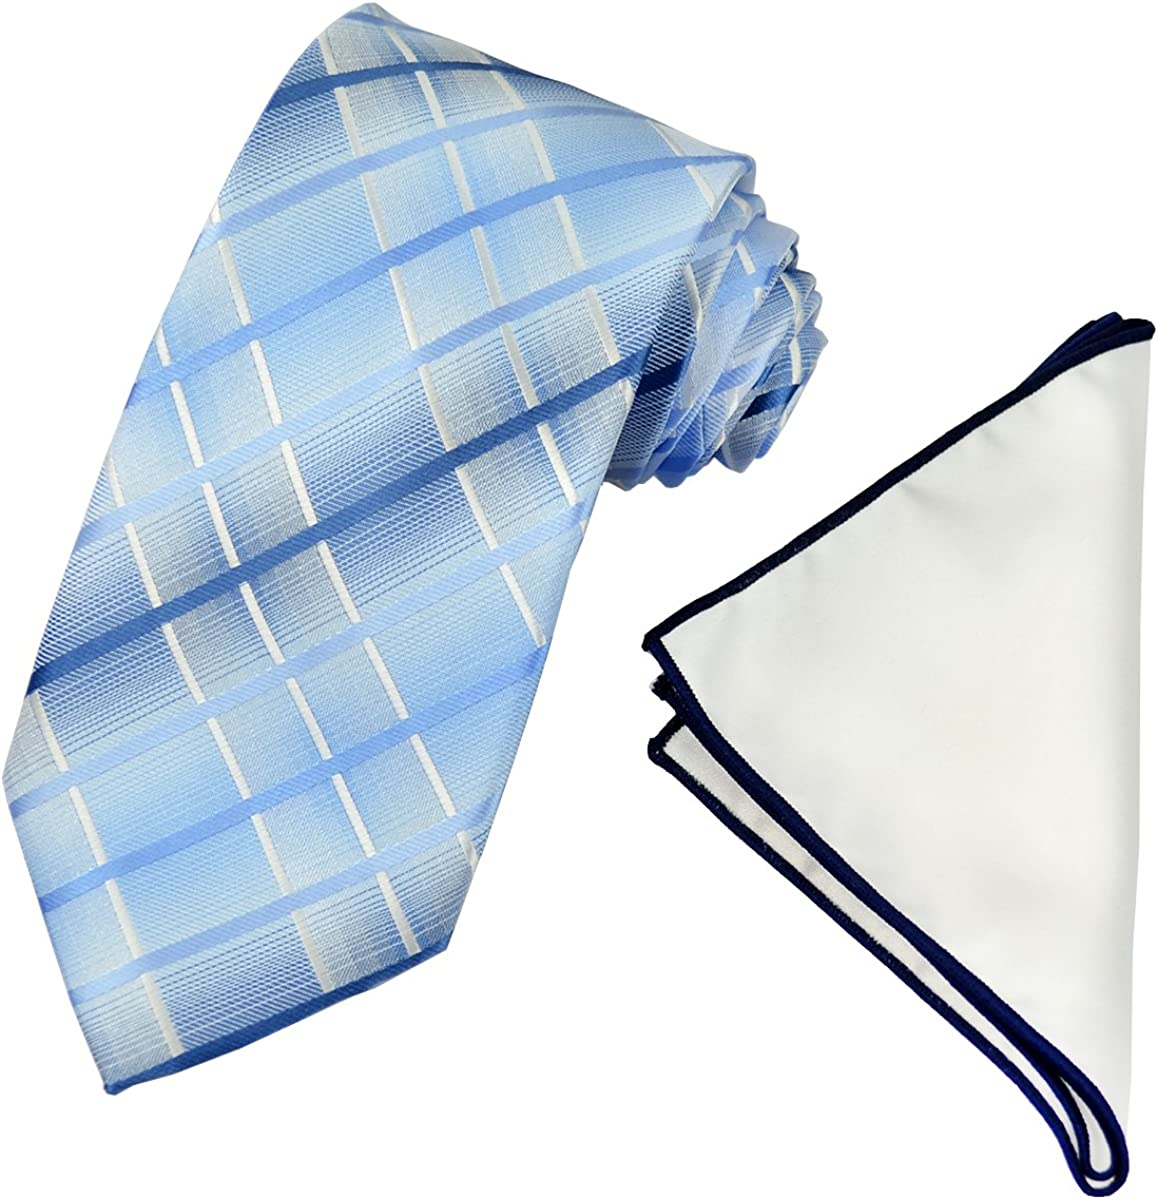 Blue and White Men's Tie with Contrast Pocket Square Set